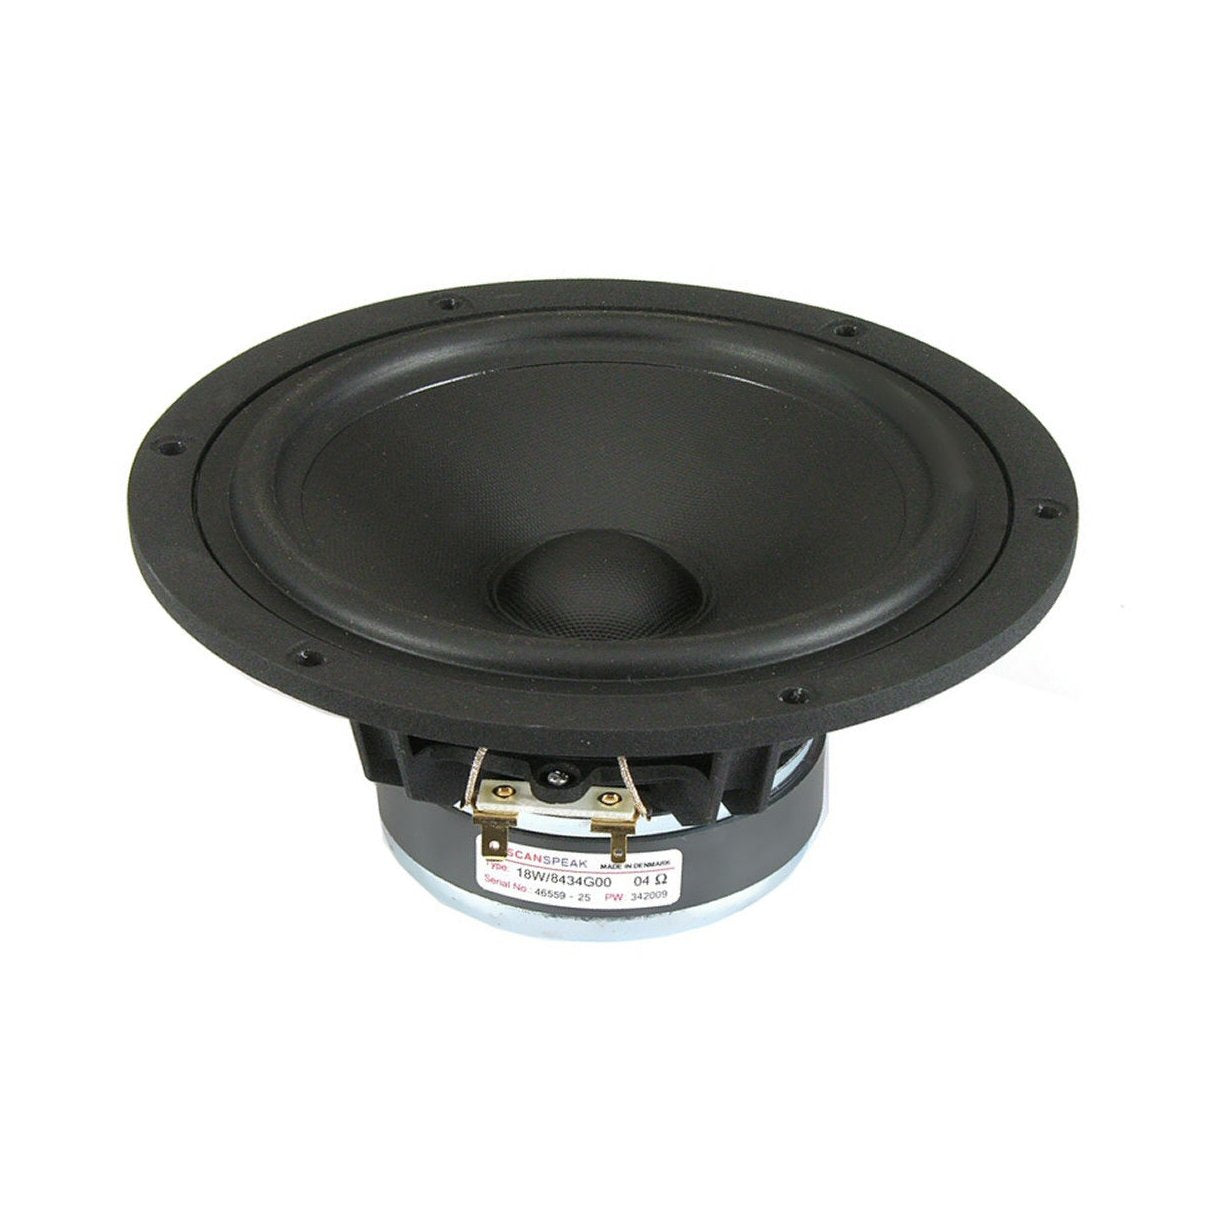 Scanspeak Discovery 18W/8434G00 Midwoofer - Willys-Hifi Ltd